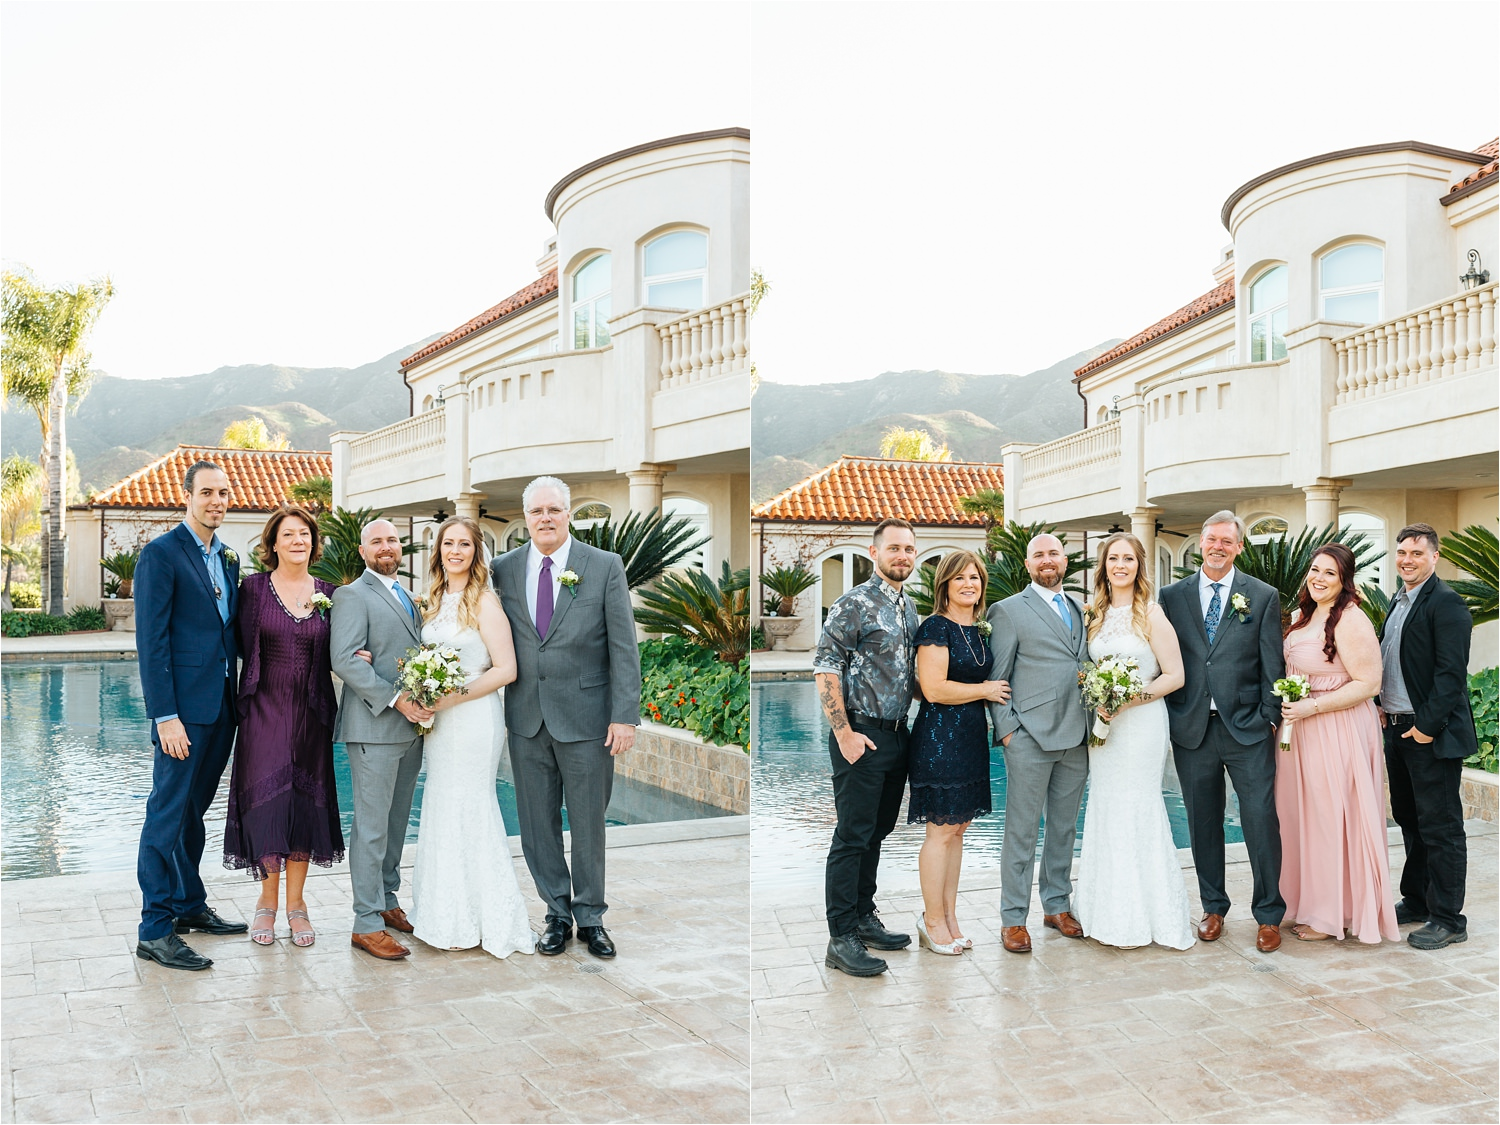 Family Photos at the Wedding - Lake Elsinore - San Diego Wedding Photographer - https://brittneyhannonphotography.com